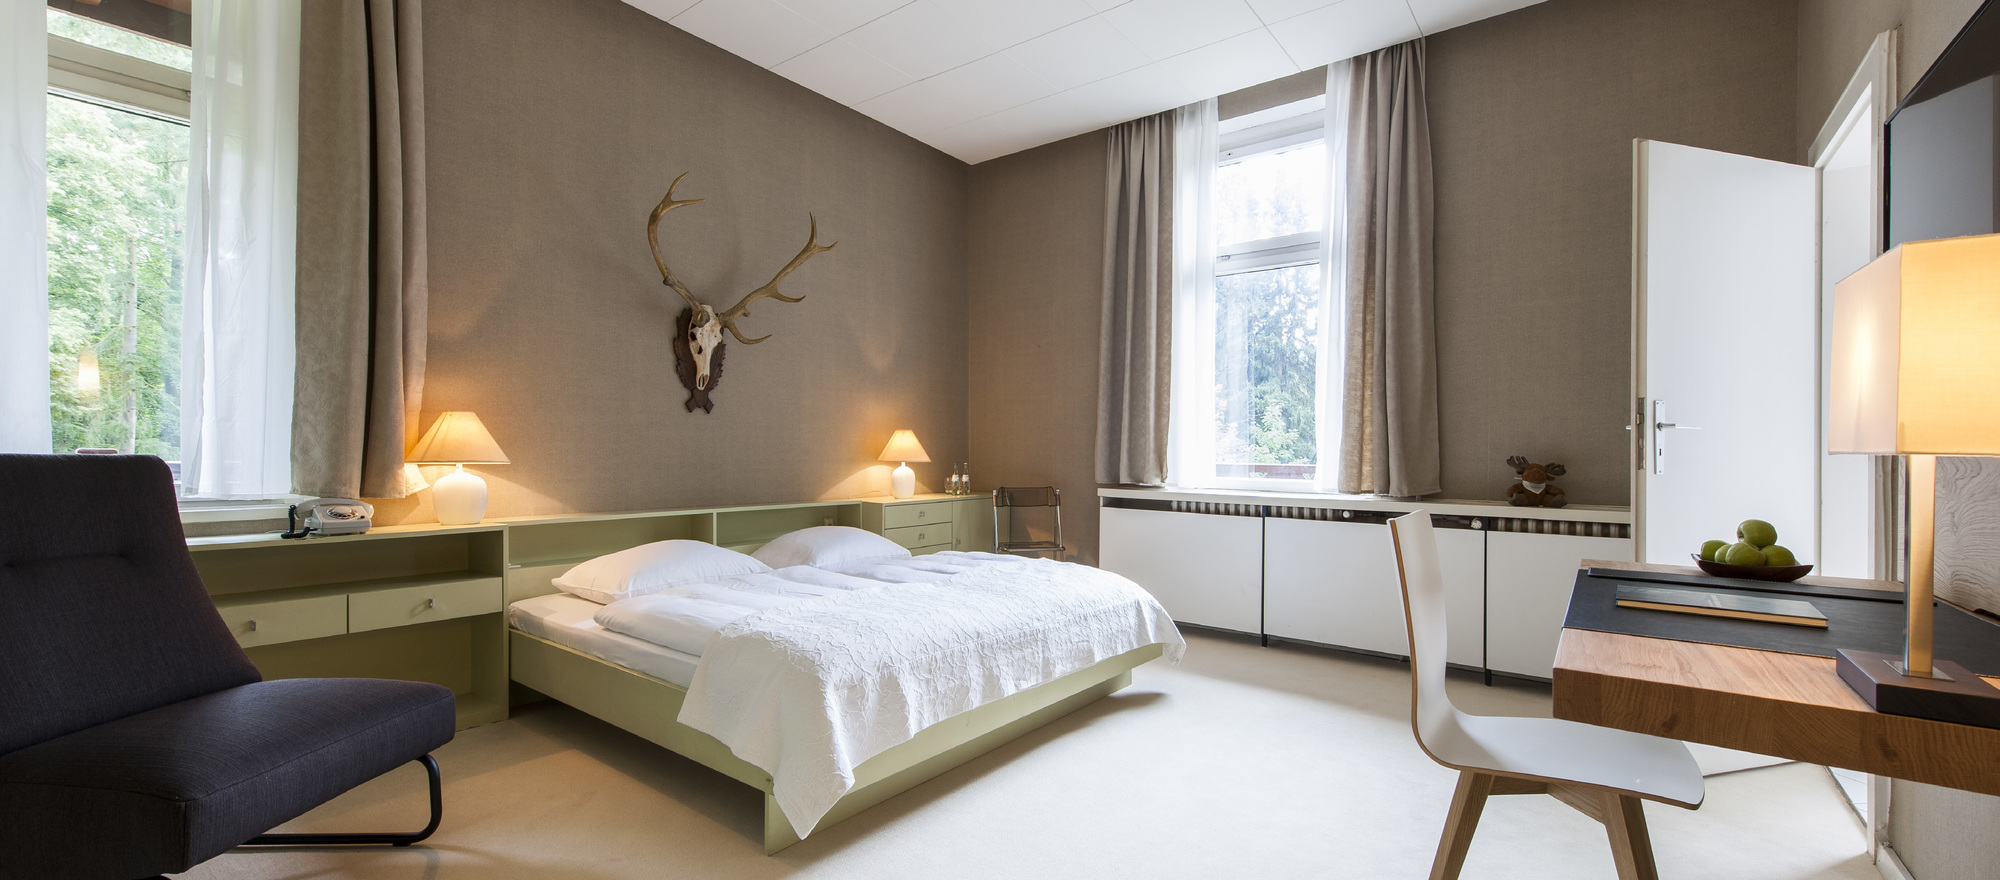 Hubertus Suite in the Ringhotel Schorfheide | Tagungszentrum der Wirtschaft in Joachimsthal, 4-stars hotel close to Berlin